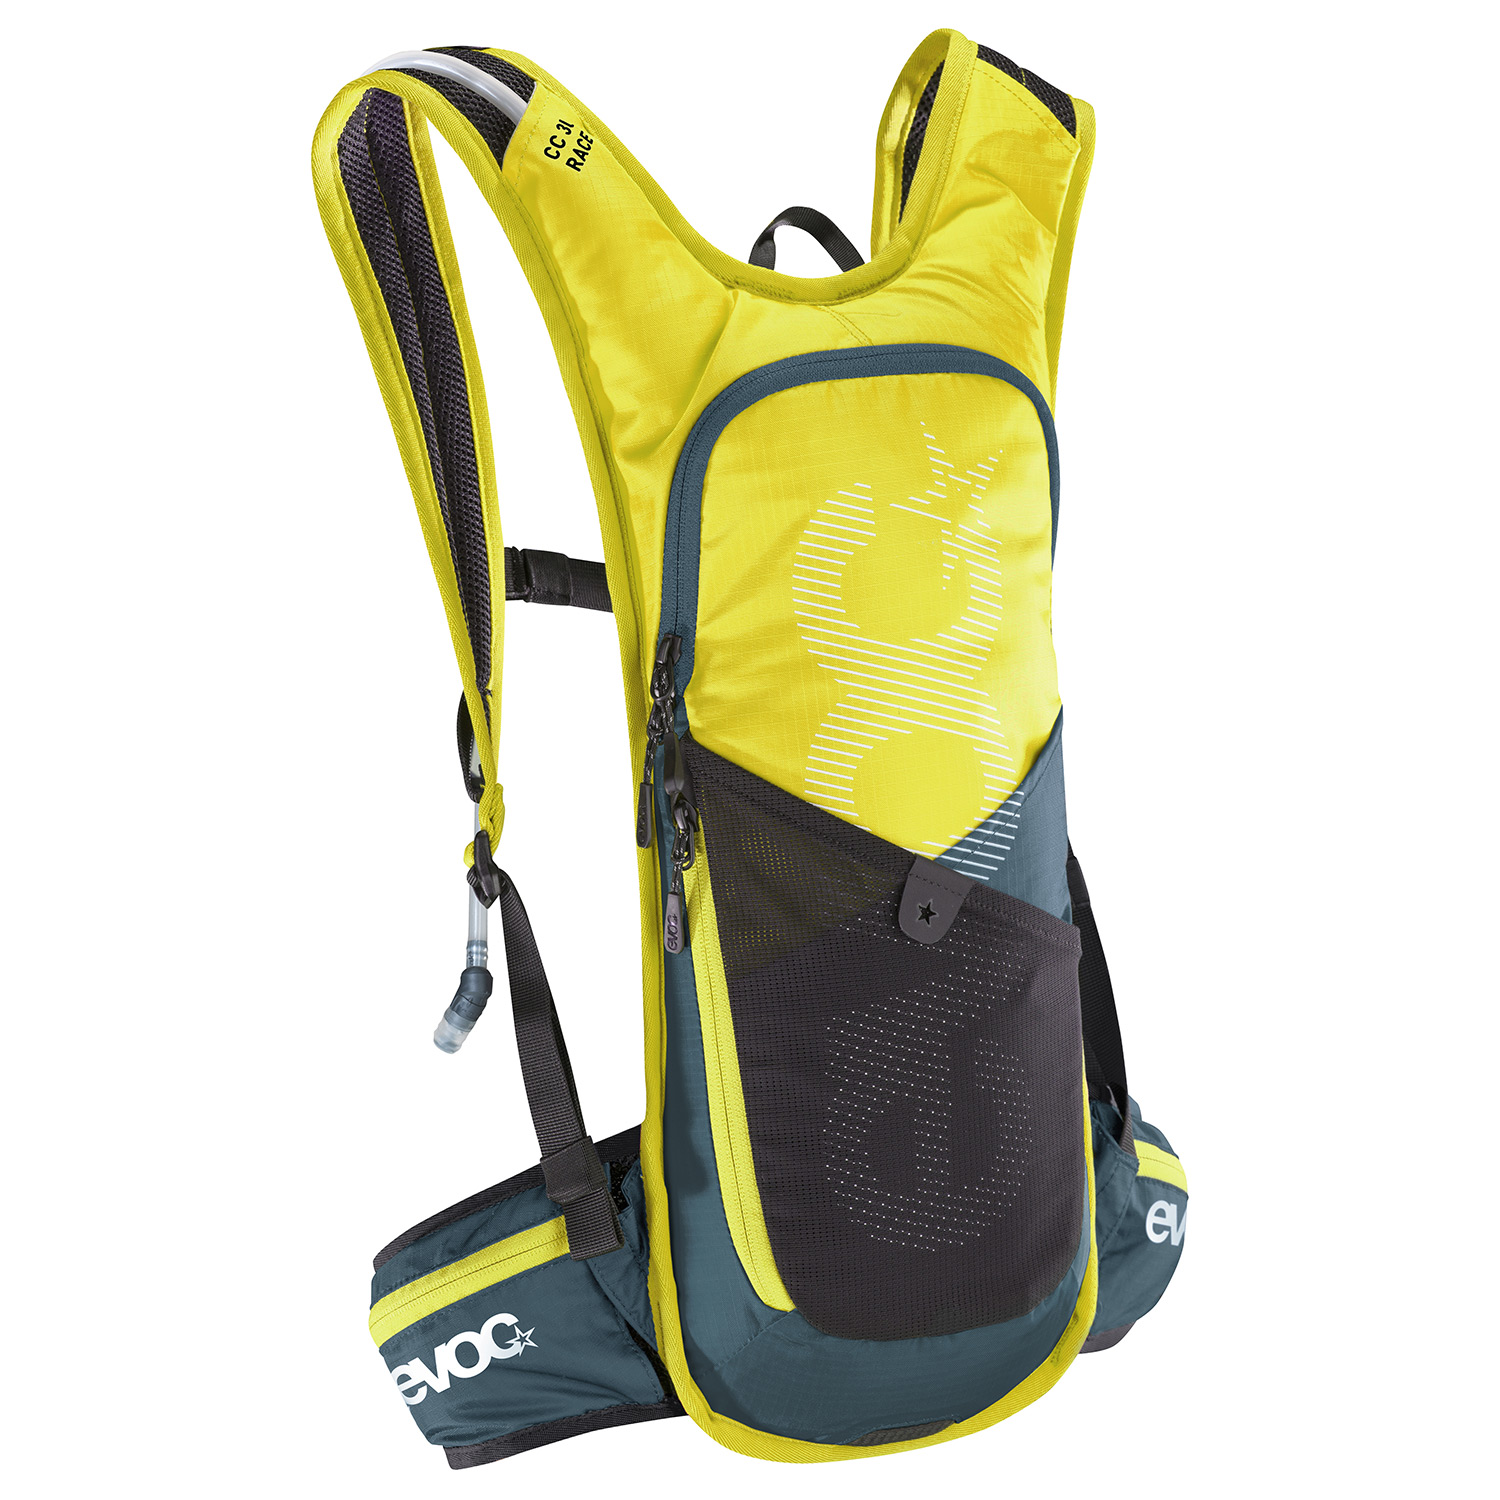 EVOC CC 3l RACE - The EVOC CC 3l RACE backpack has been specially designed for endurance bike races. Ultra-lightweight and minimalist.